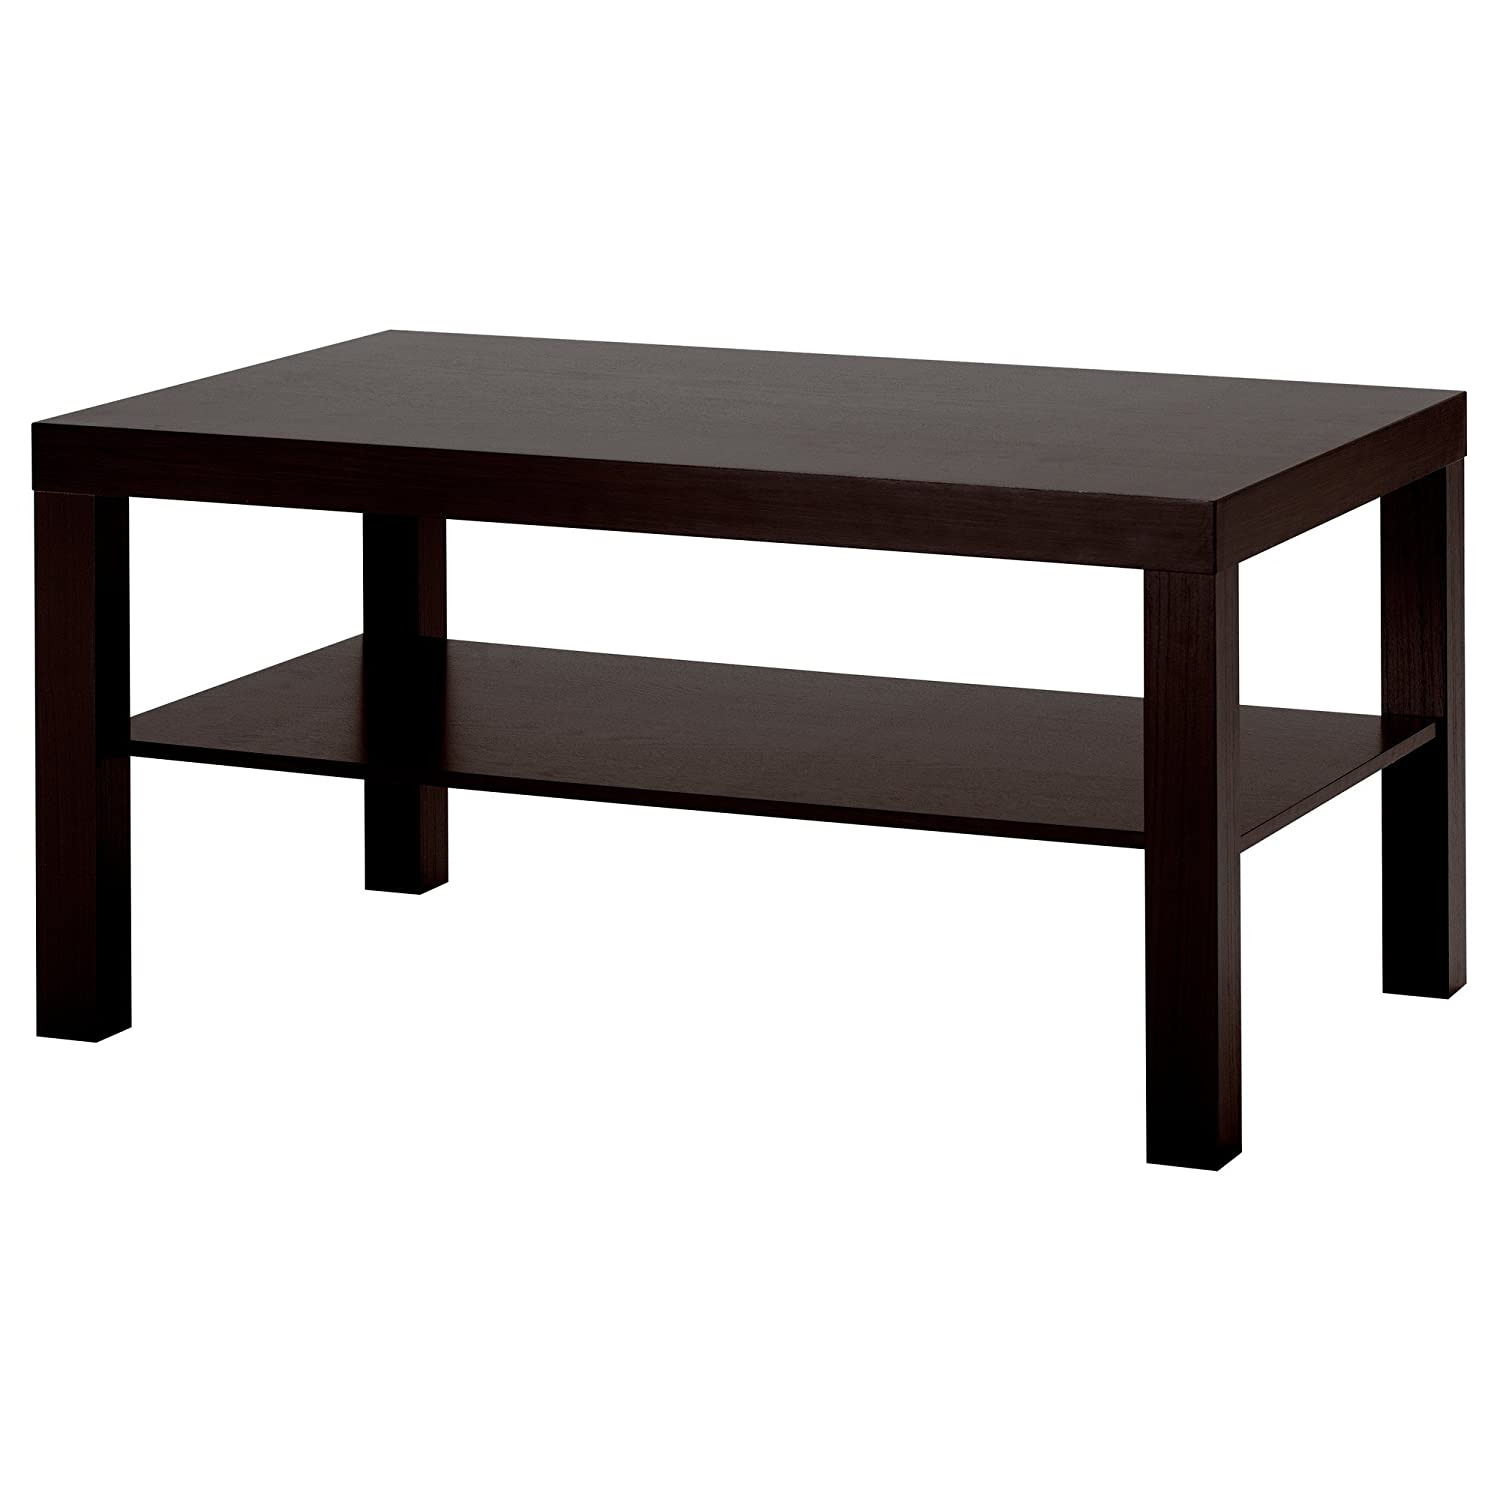 Amazon.com: Coffee Tables: Home & Kitchen